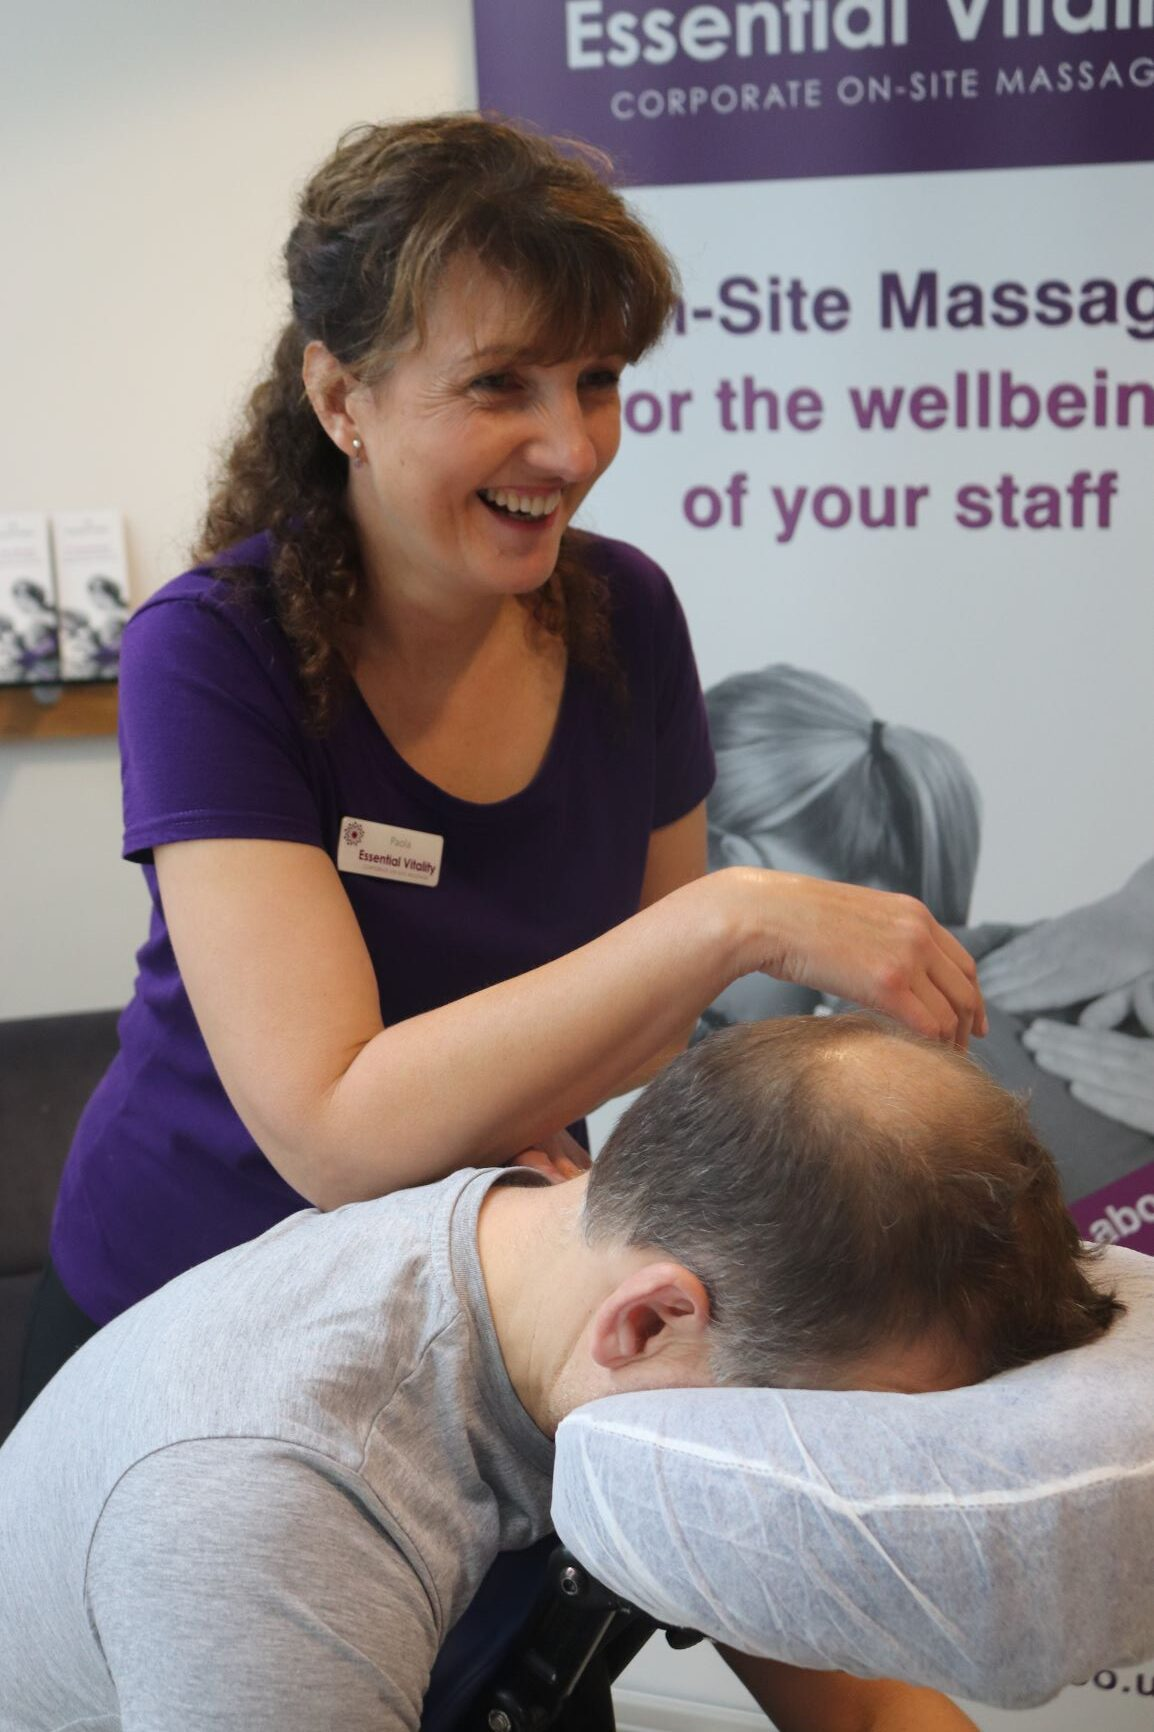 On-site massage showing seated Acupressure technique